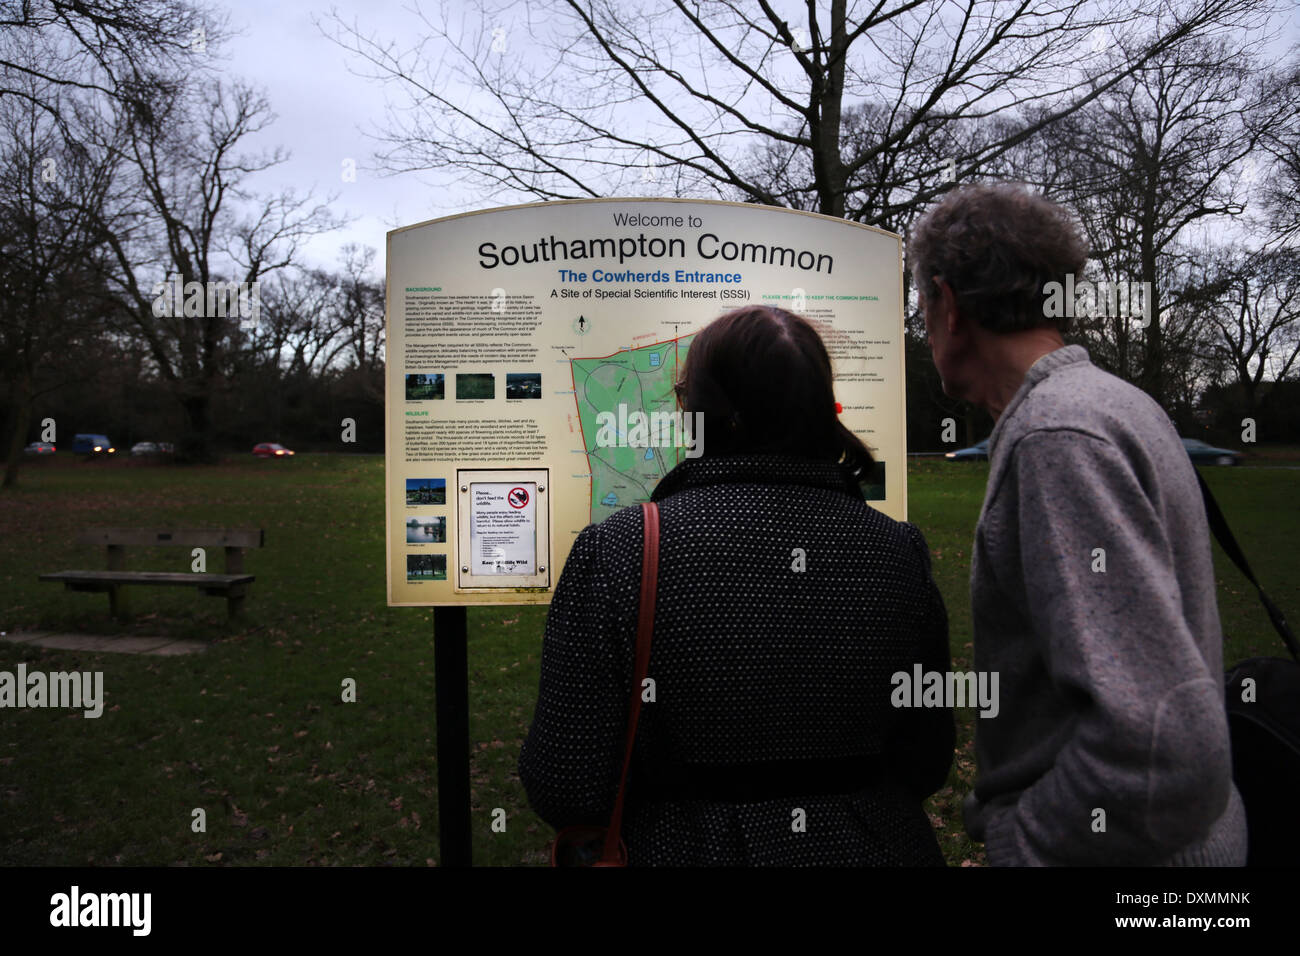 Hampshire England Southampton Common Man And Woman Looking At Cowherds Entrance Sign Site Of Special Scientific Interest (SSSI) - Stock Image